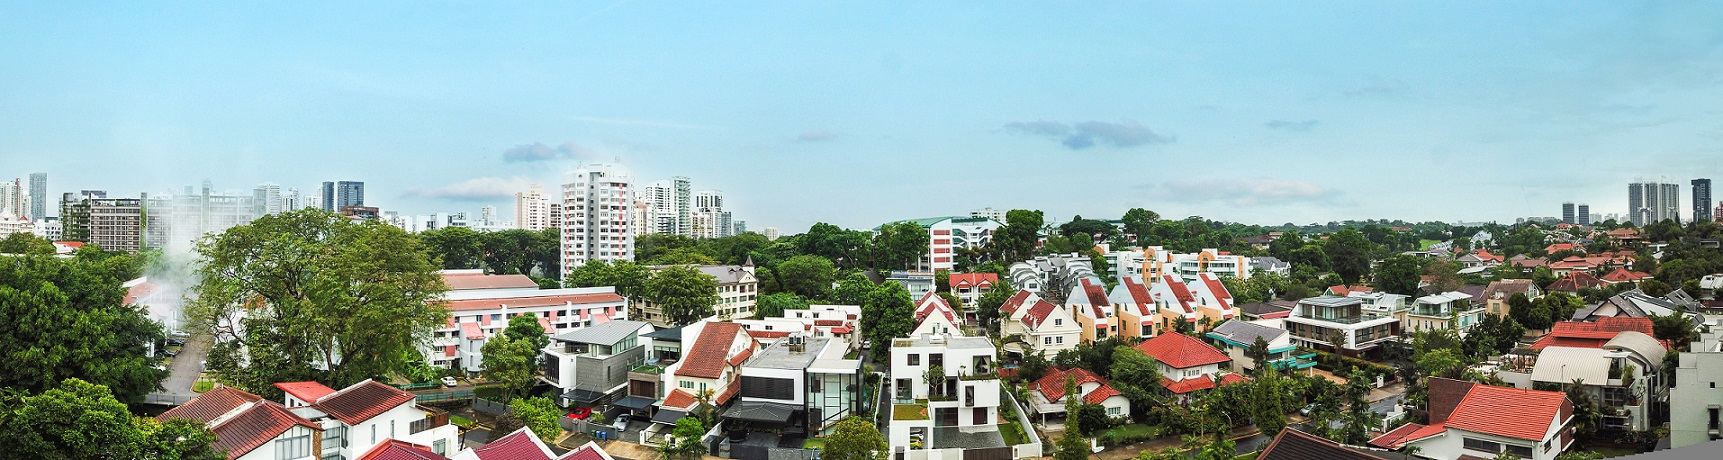 Views from the fifth level of the Gilstead Road site - EDGEPROP SINGAPORE